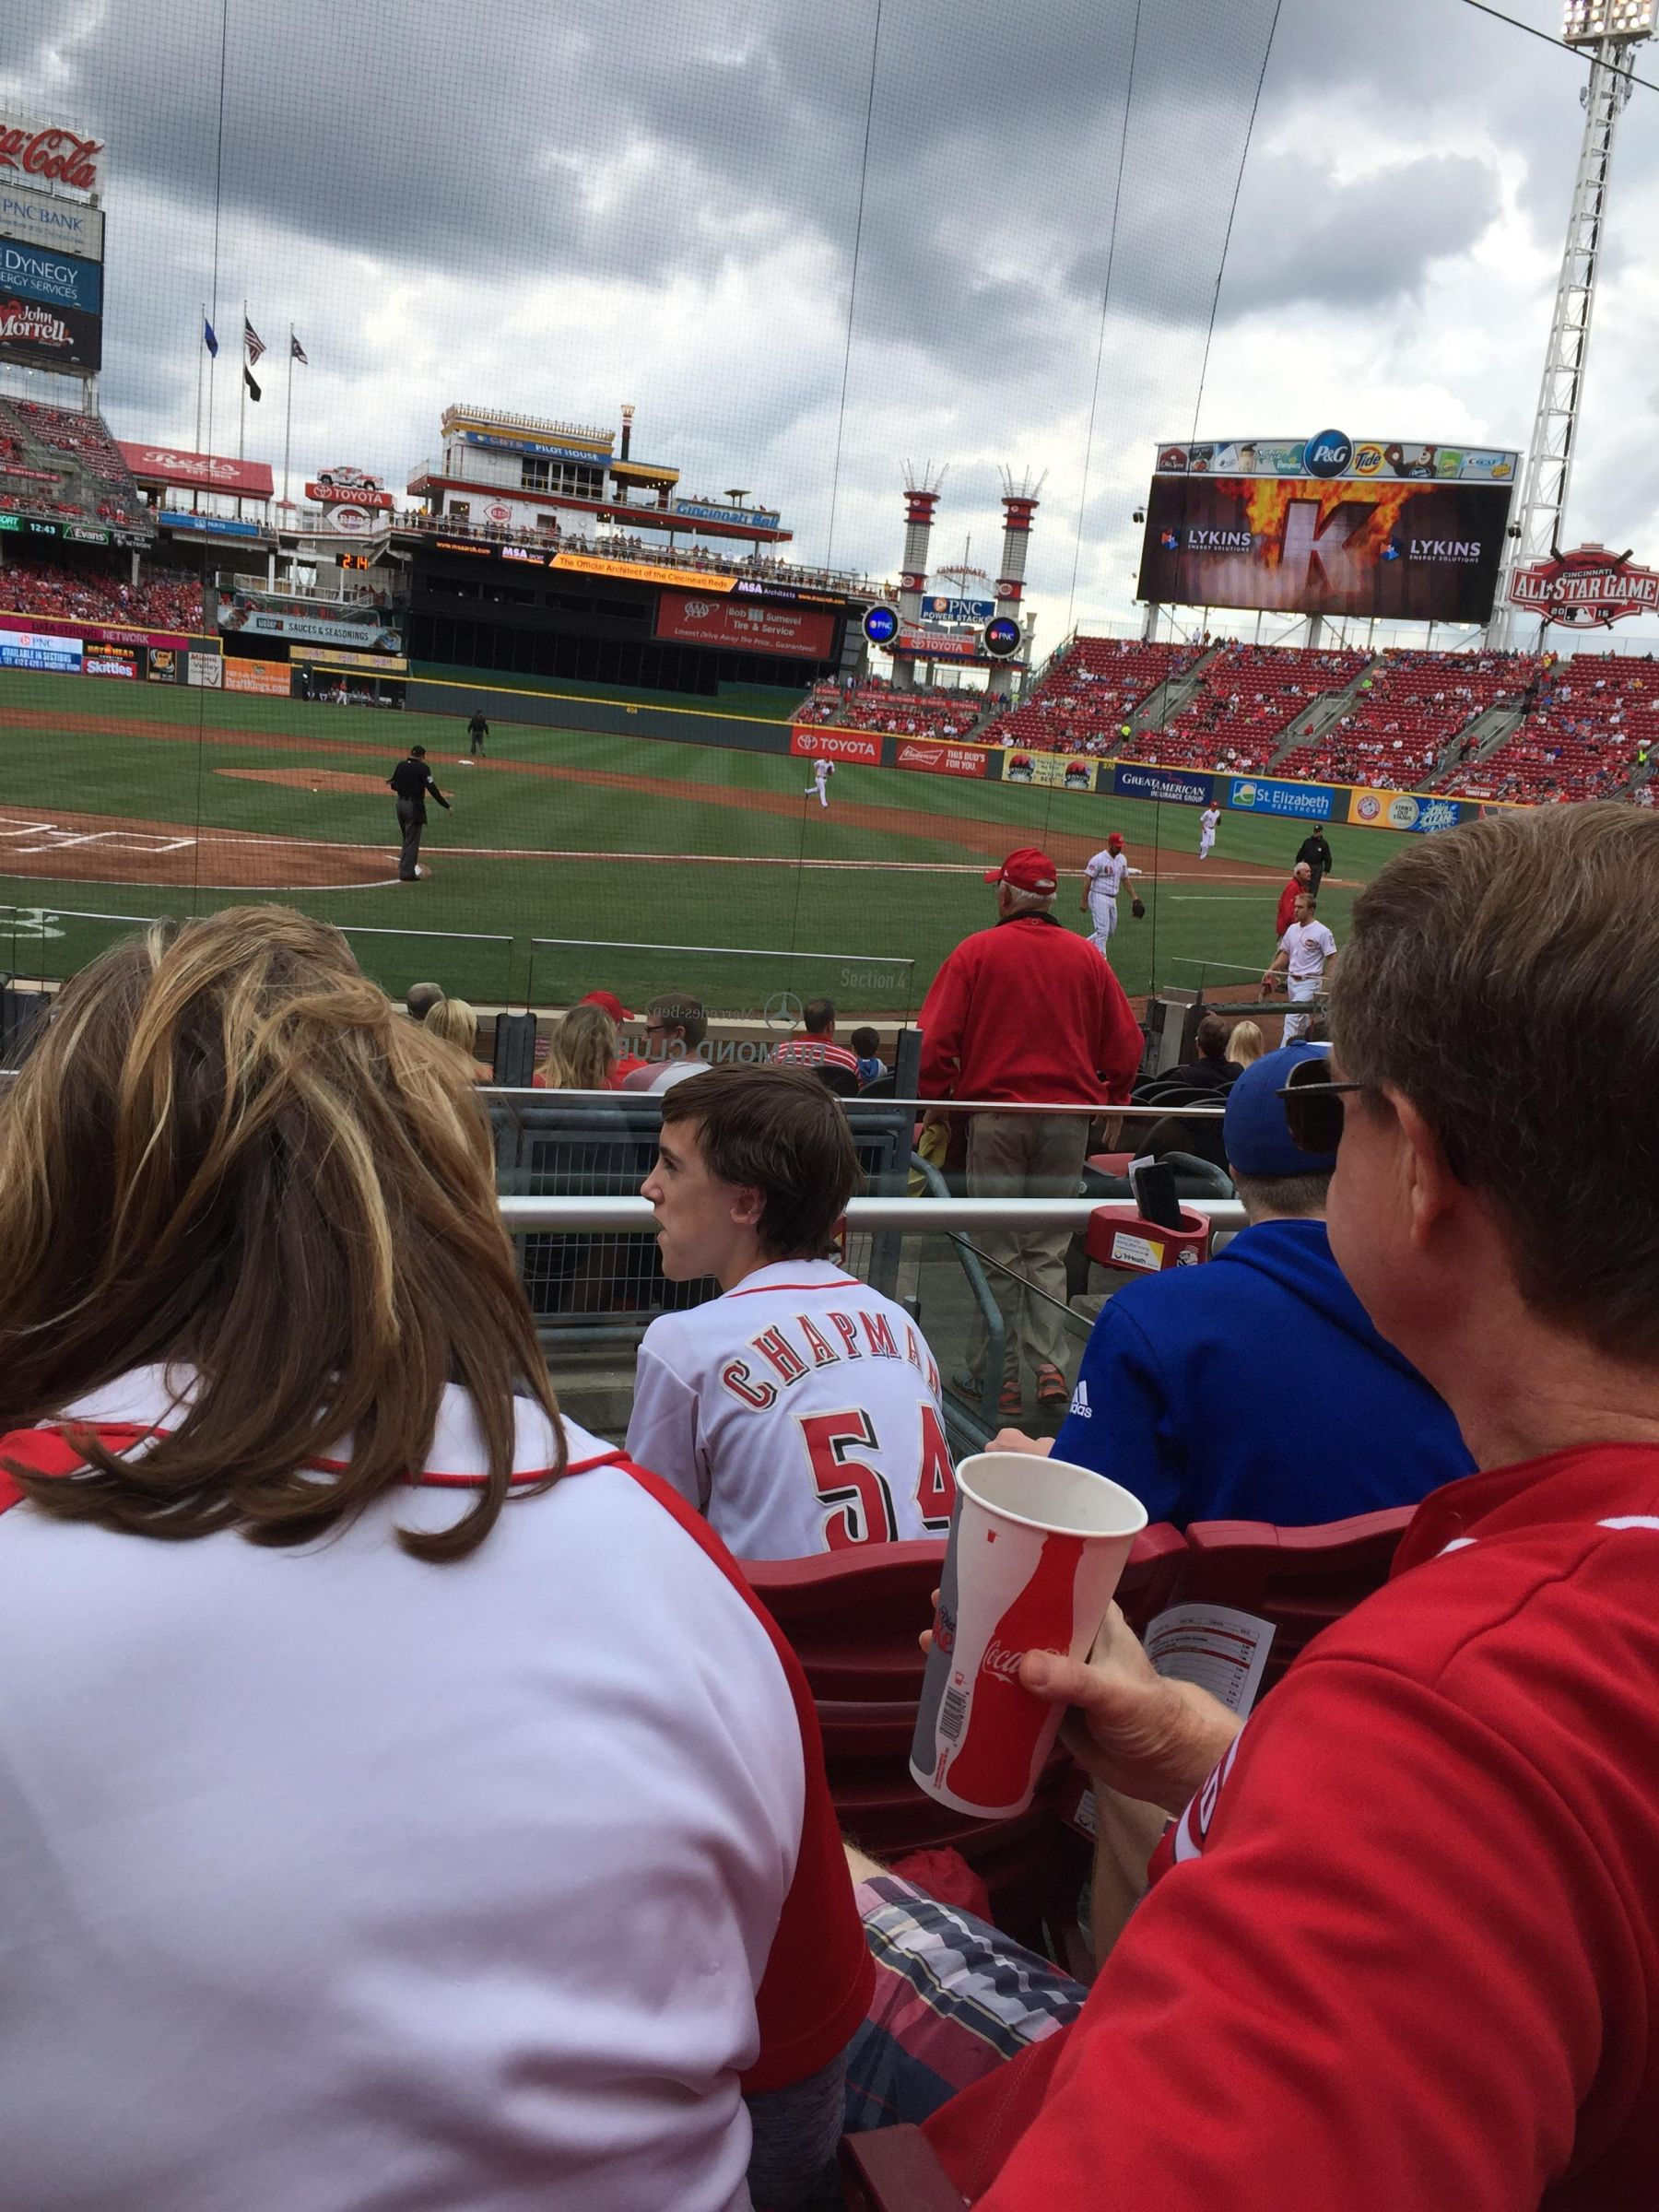 Seat View for Great American Ball Park Section 24, Row C, Seat 567